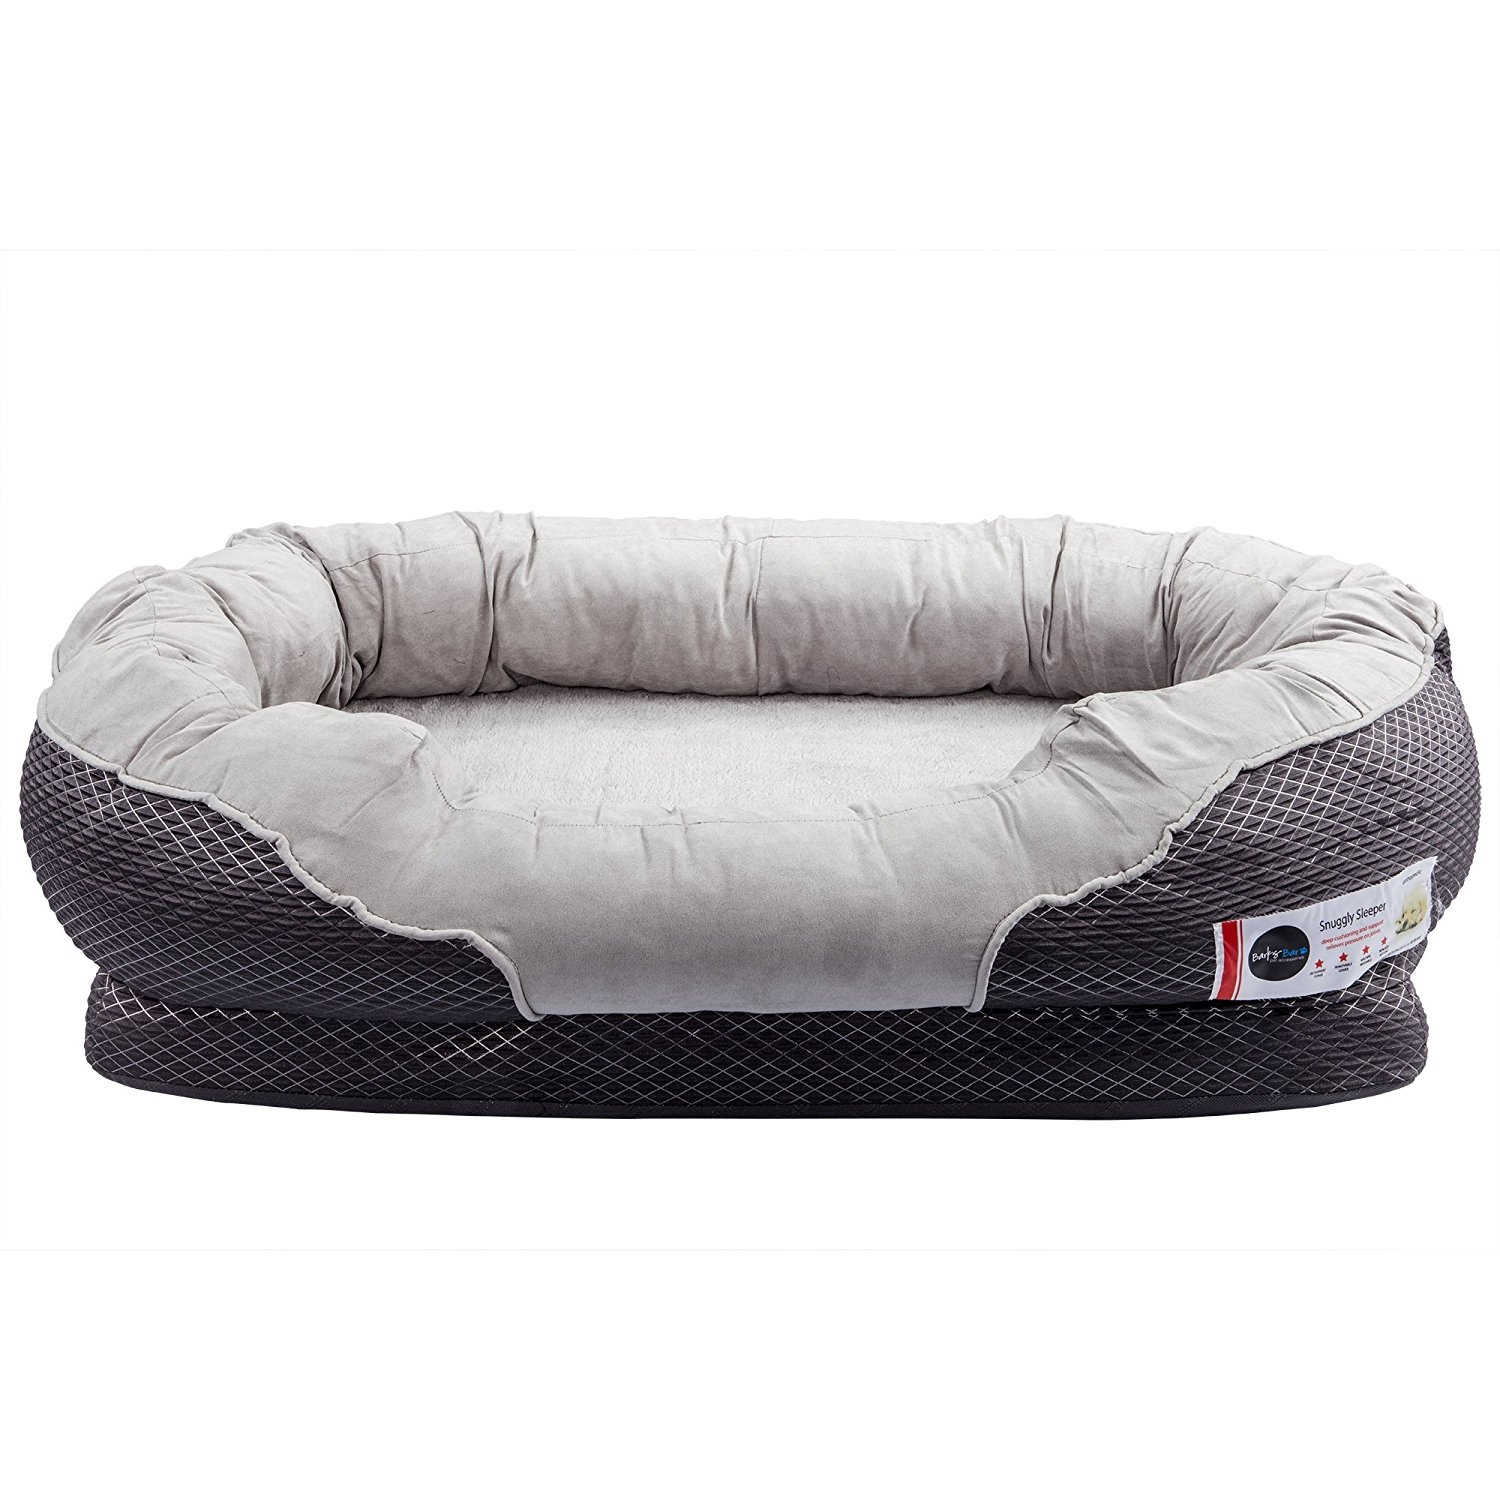 Barksbar Snuggly Sleeper Orthopedic Dog Bed